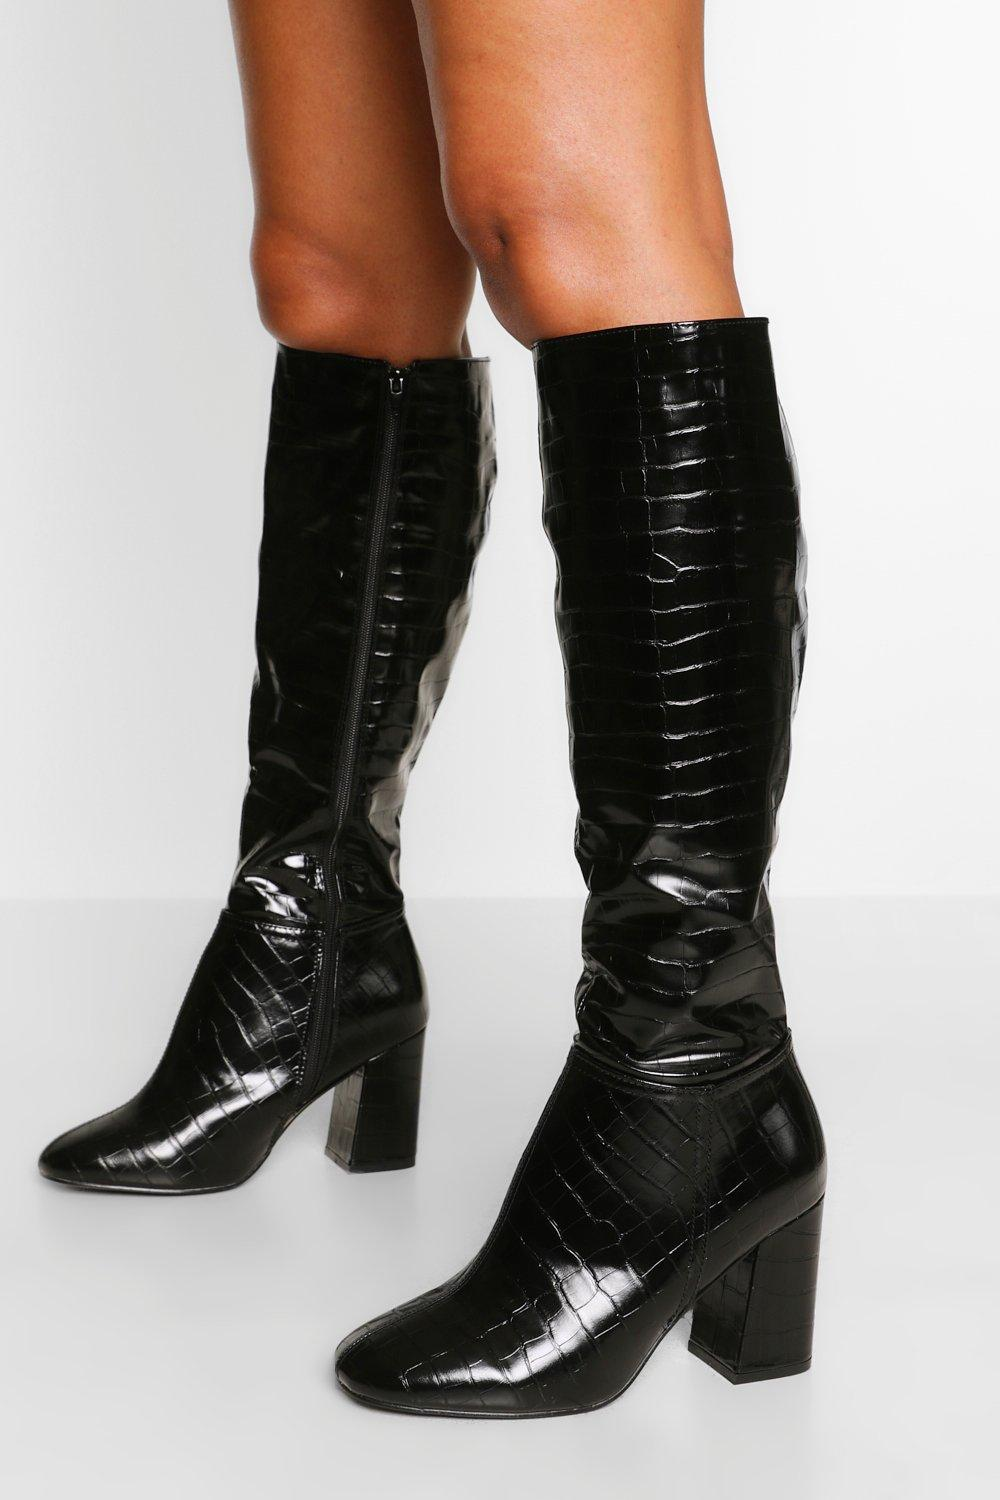 Vintage Boots, Retro Boots Womens Wide Fit Block Heel Knee Boot - Black - 10 $34.00 AT vintagedancer.com